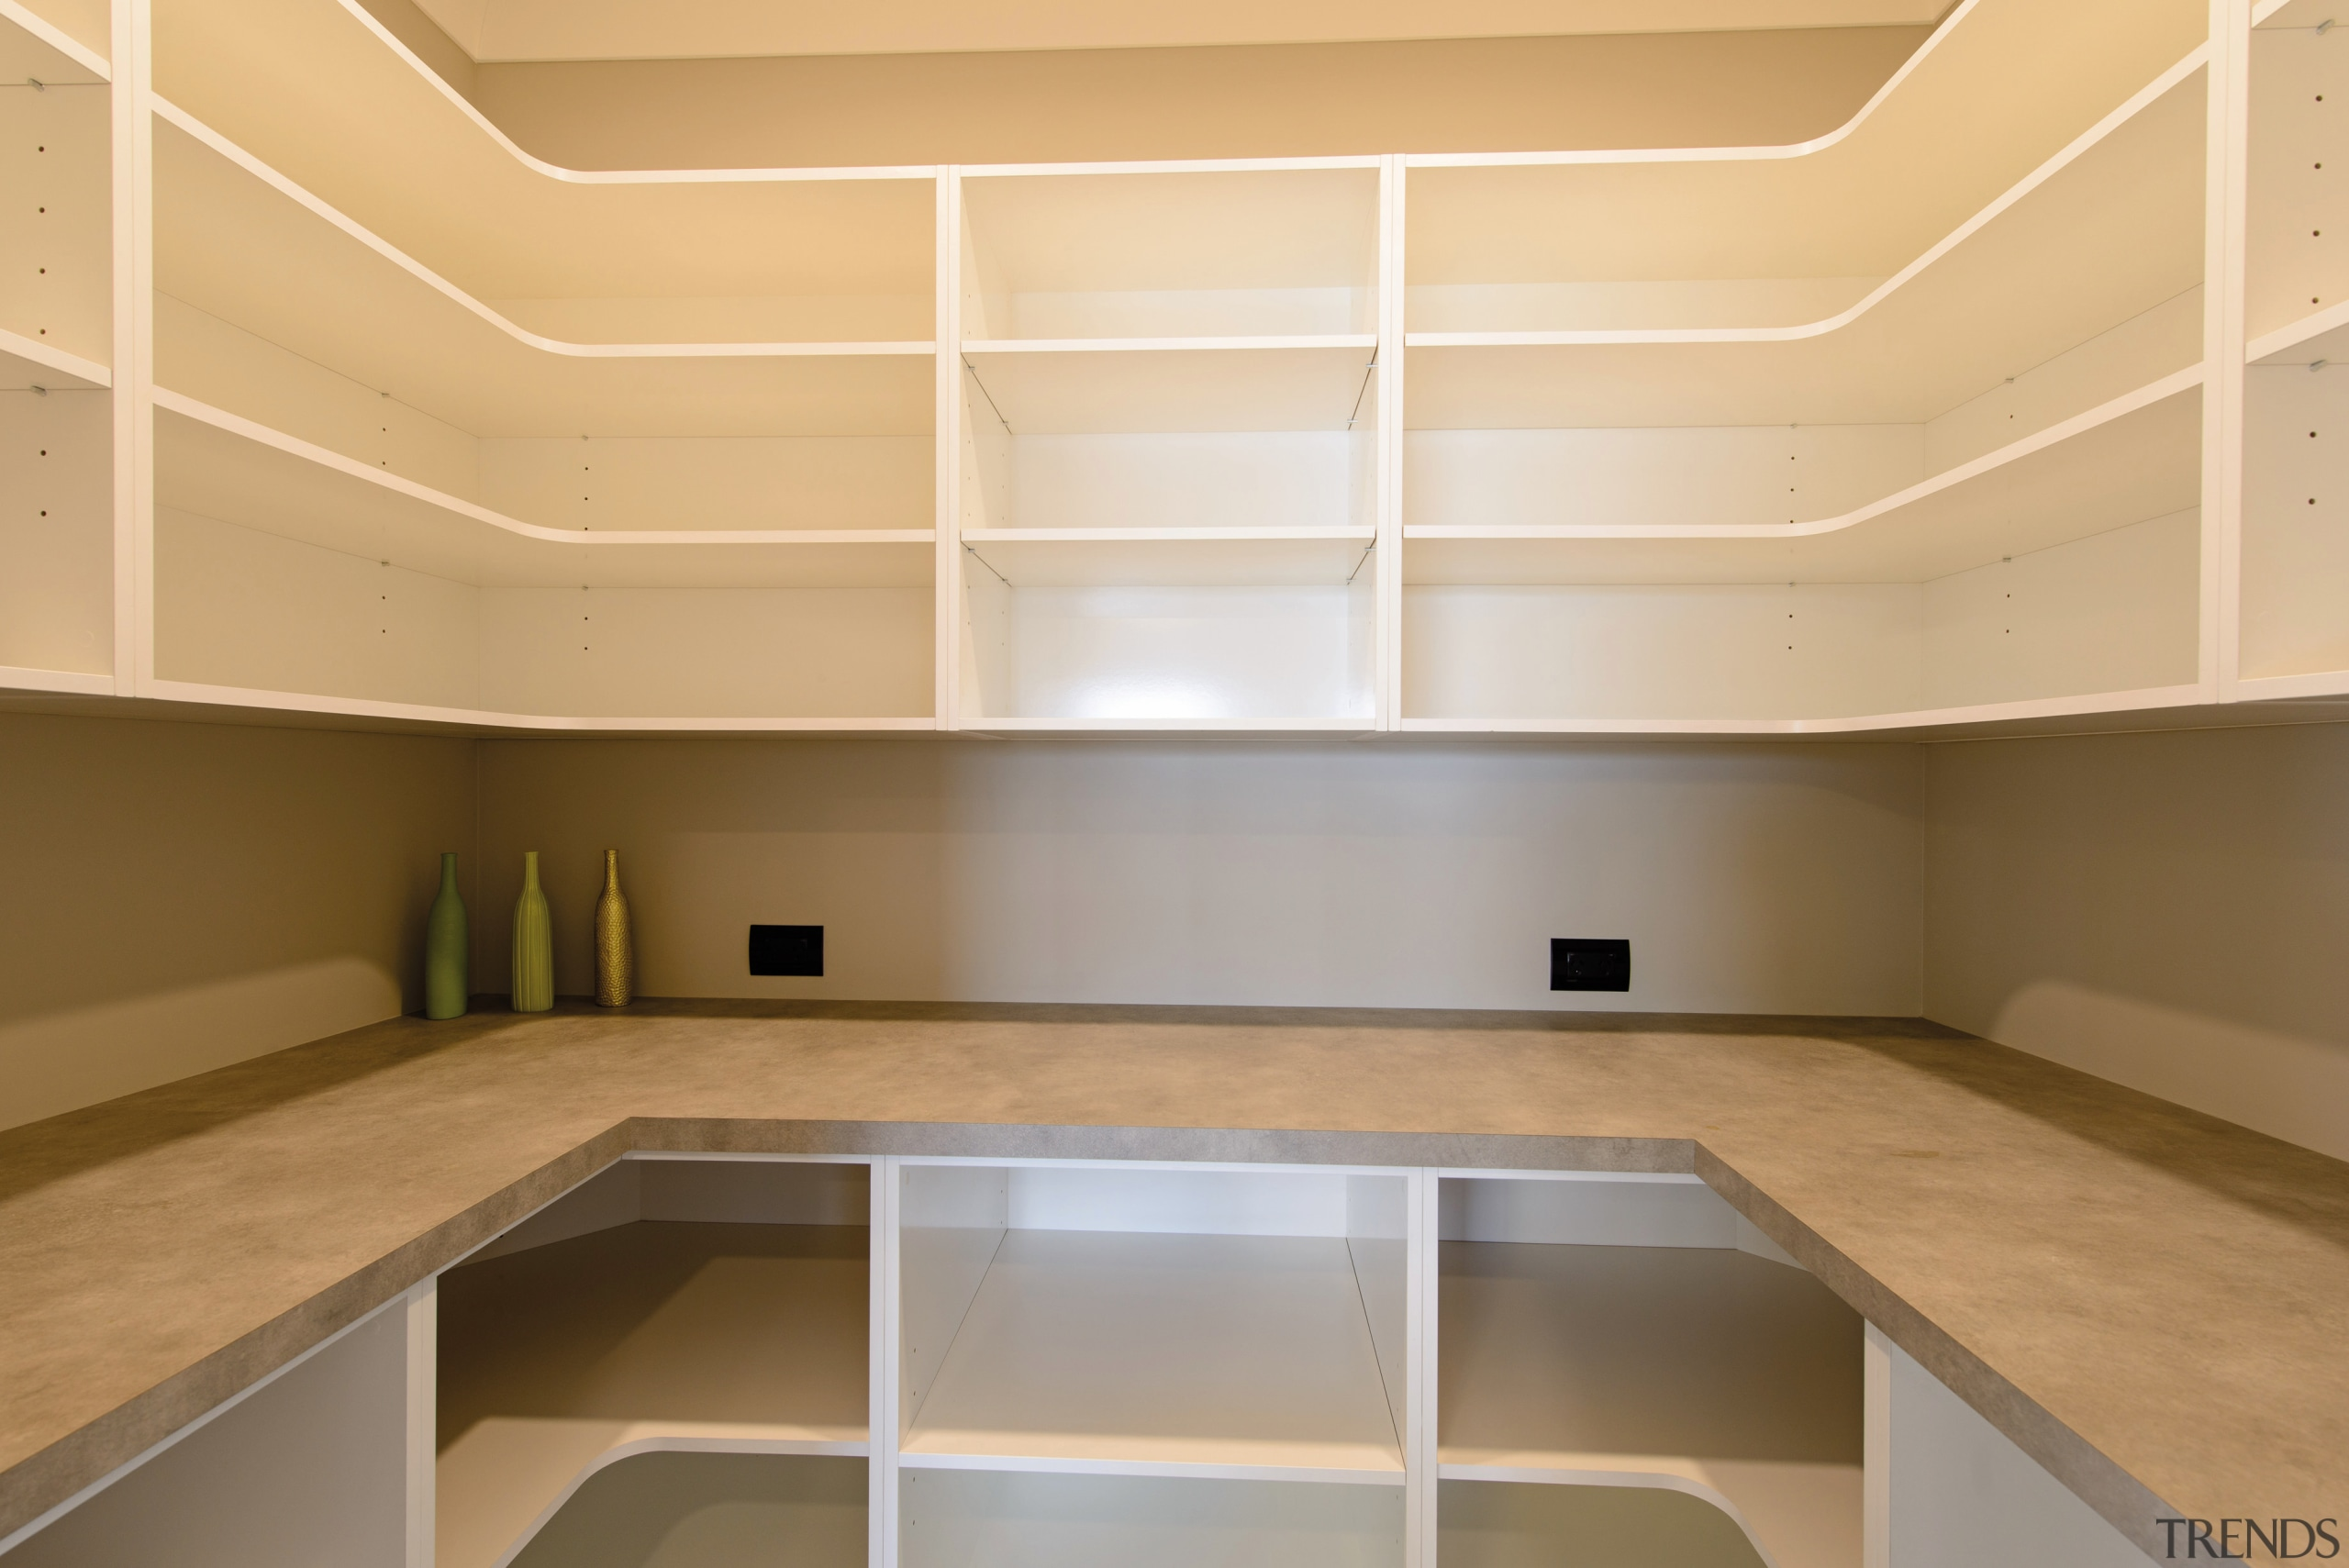 Walk in pantry - Walk in pantry - architecture, cabinetry, ceiling, countertop, daylighting, floor, interior design, kitchen, lighting, product design, real estate, orange, brown